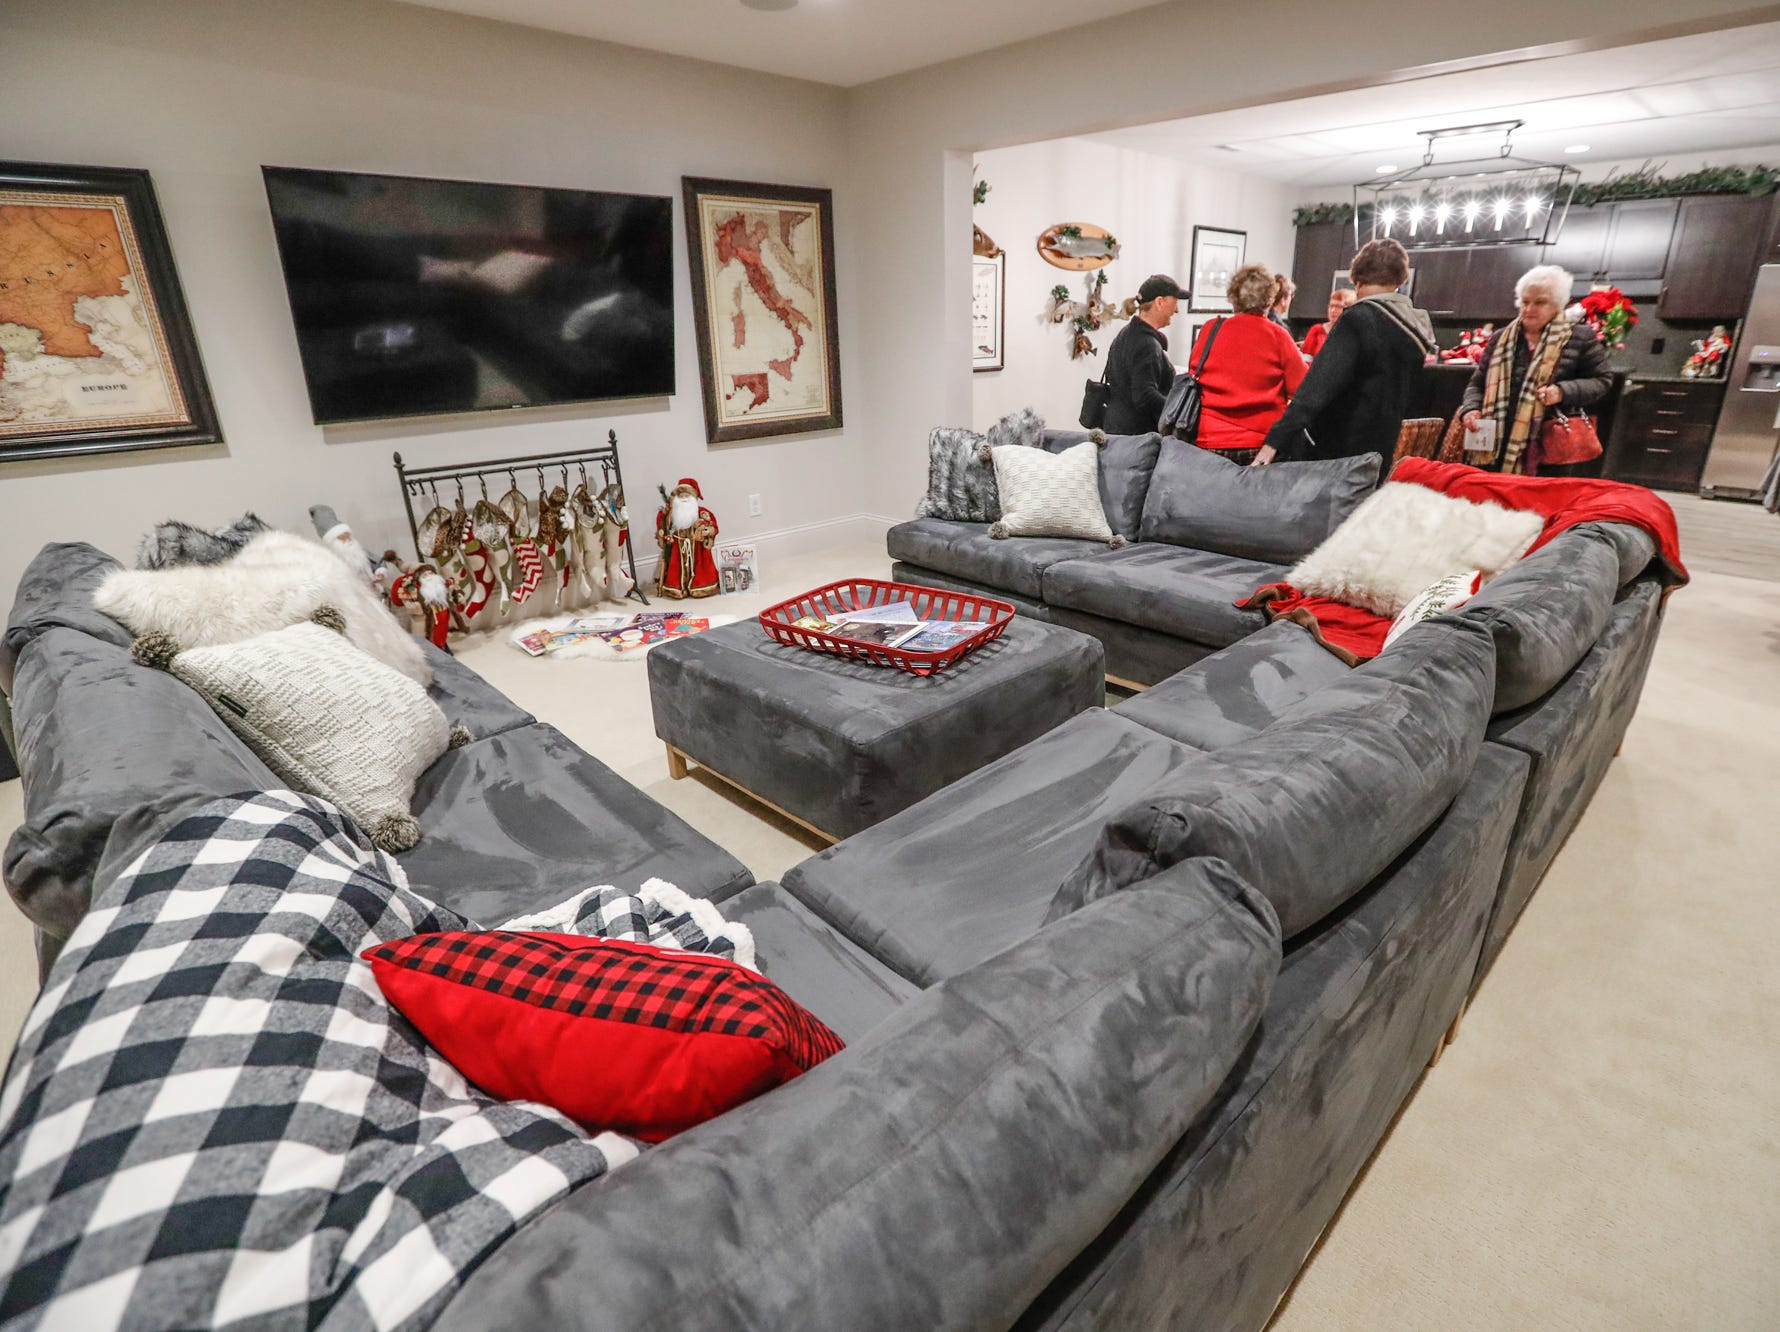 The contemporary plantation-style home belonging to Lezlie and Terry Heath features an open concept basement set up for entertaining during the Carmel Clay Historical Society Holiday Home Tour in Carmel Ind. on Saturday, Dec.1, 2018. The couples son, Craig Heath, helped to design the home.